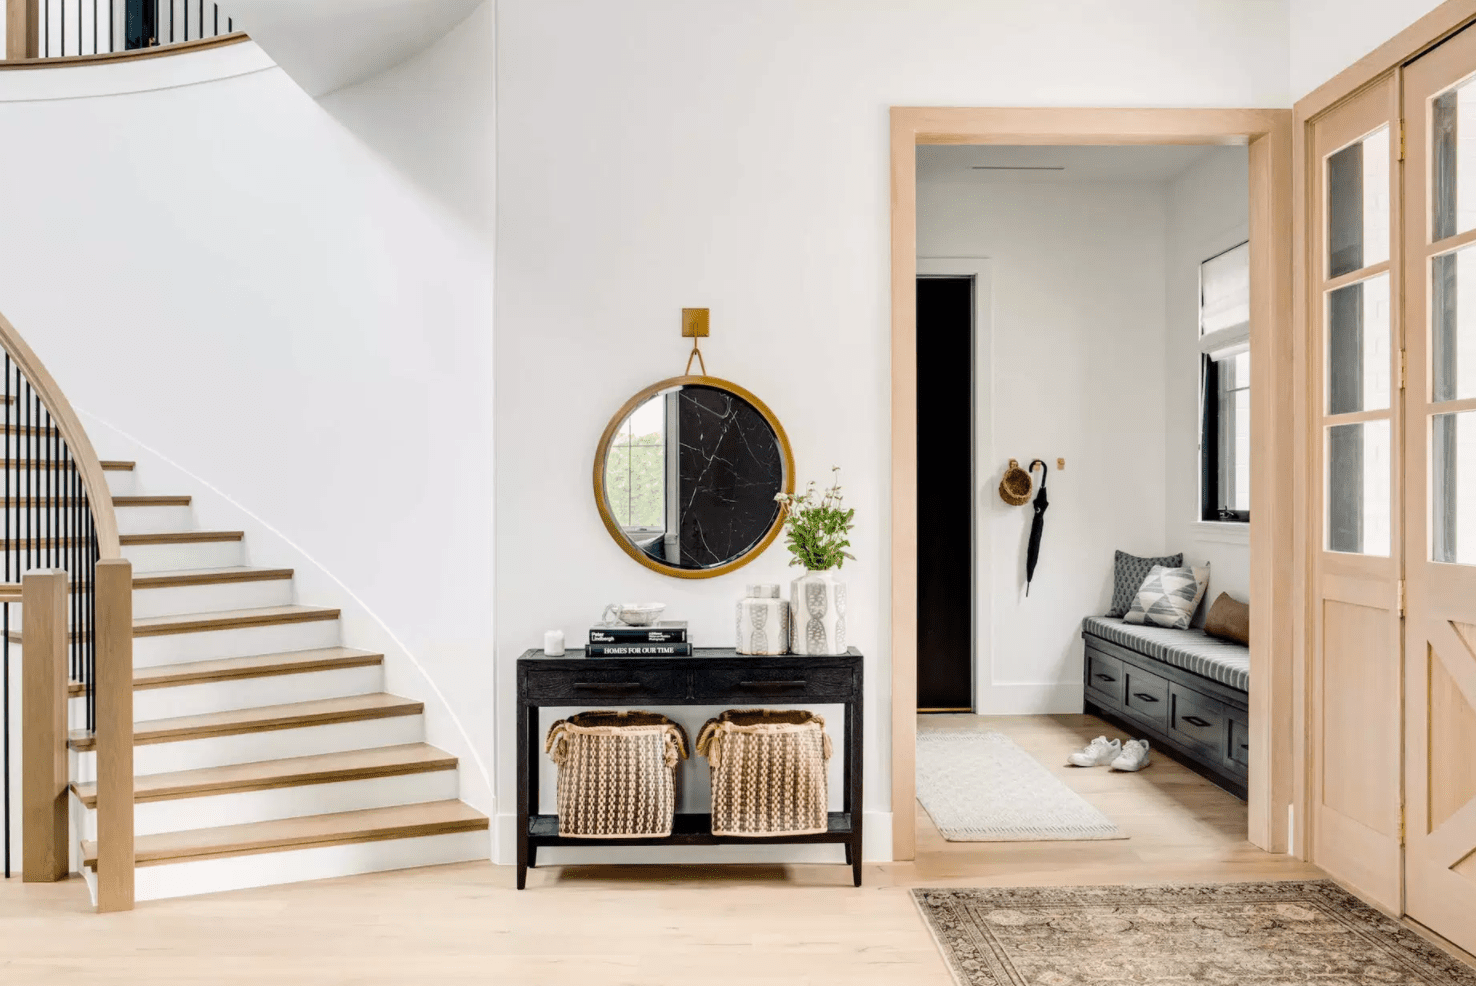 An entryway with a small black console table, a small circular mirror, and two woven baskets